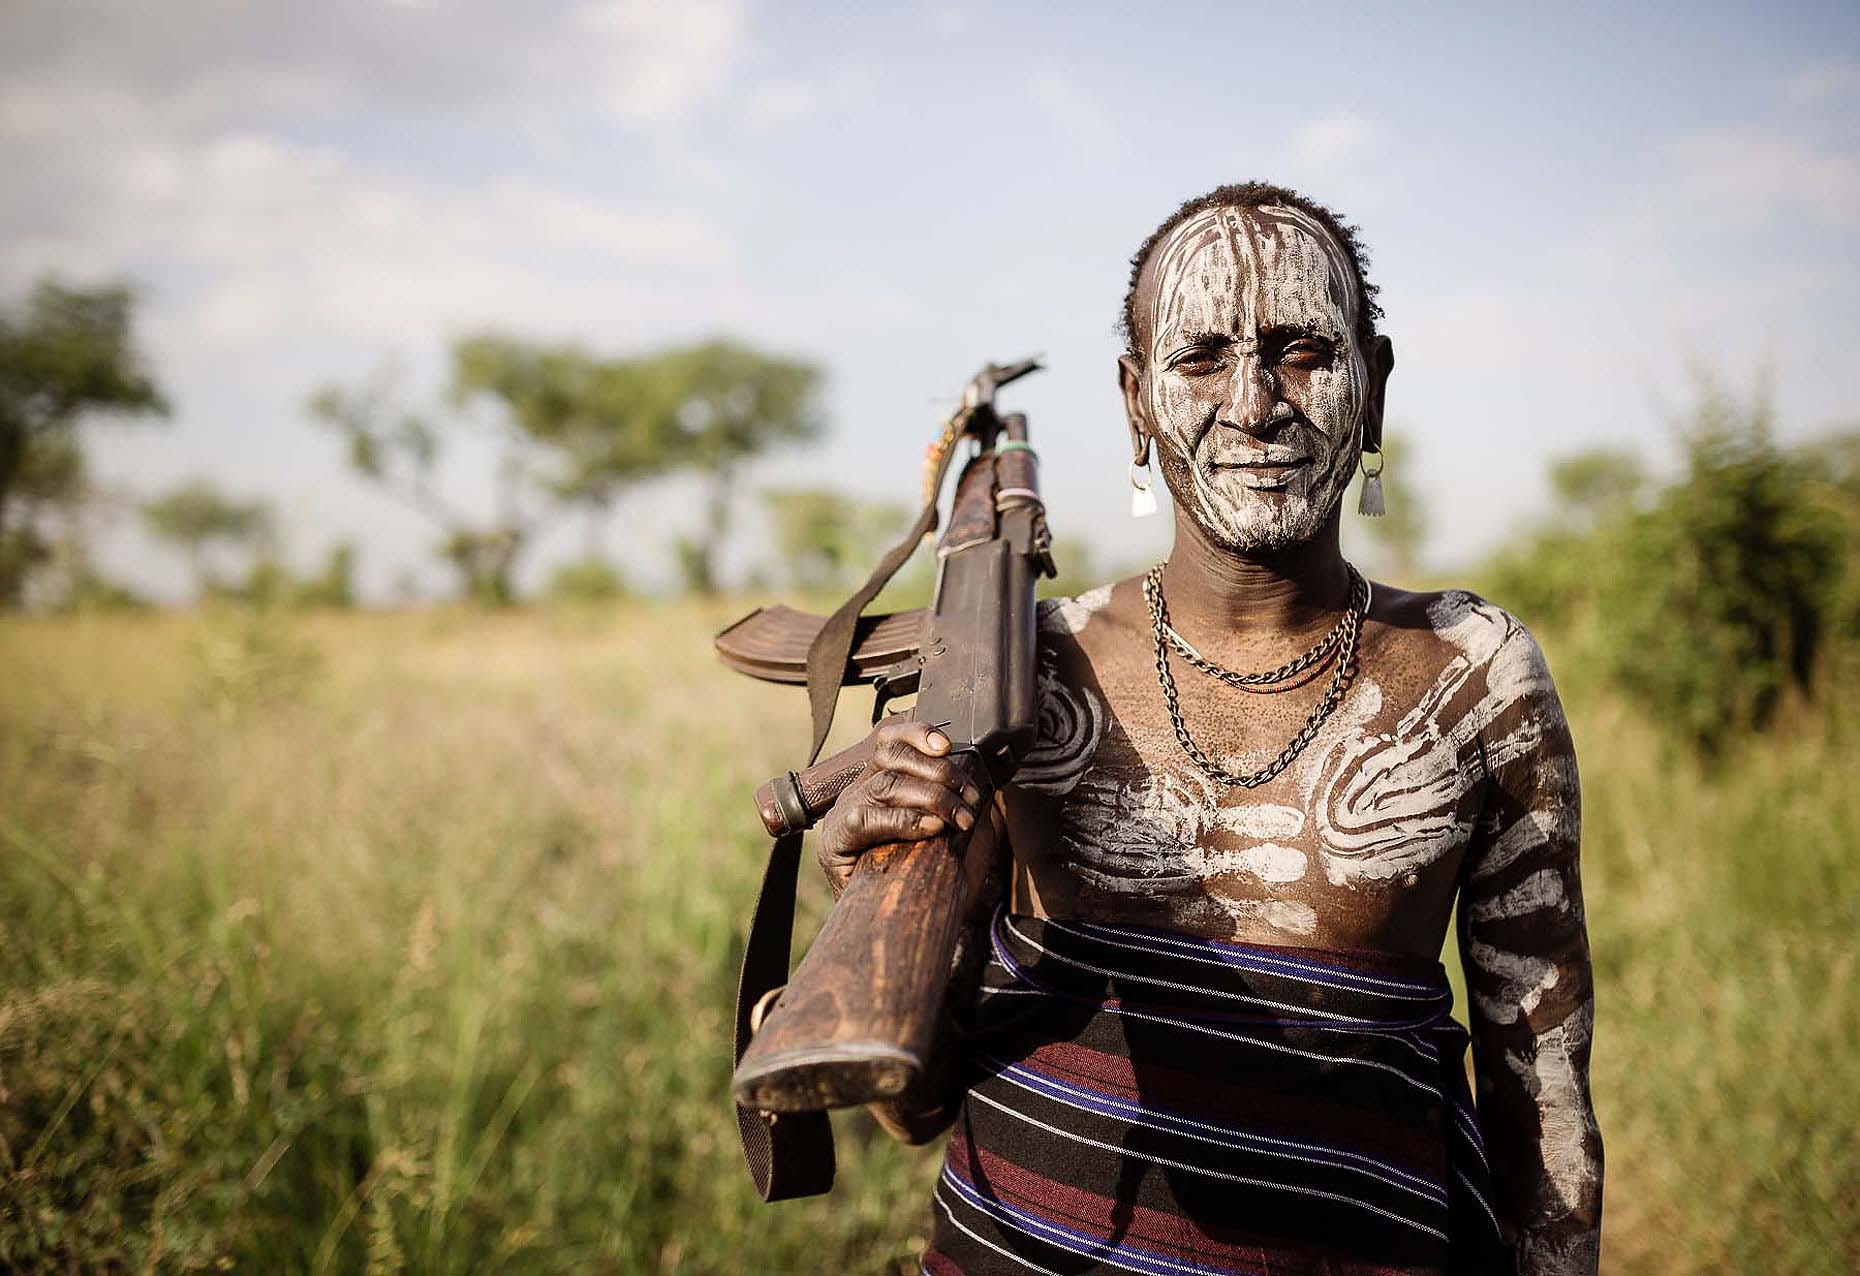 BEN_PIPE_PHOTOGRAPHY_TRIBES_OF_ETHIOPIA_11